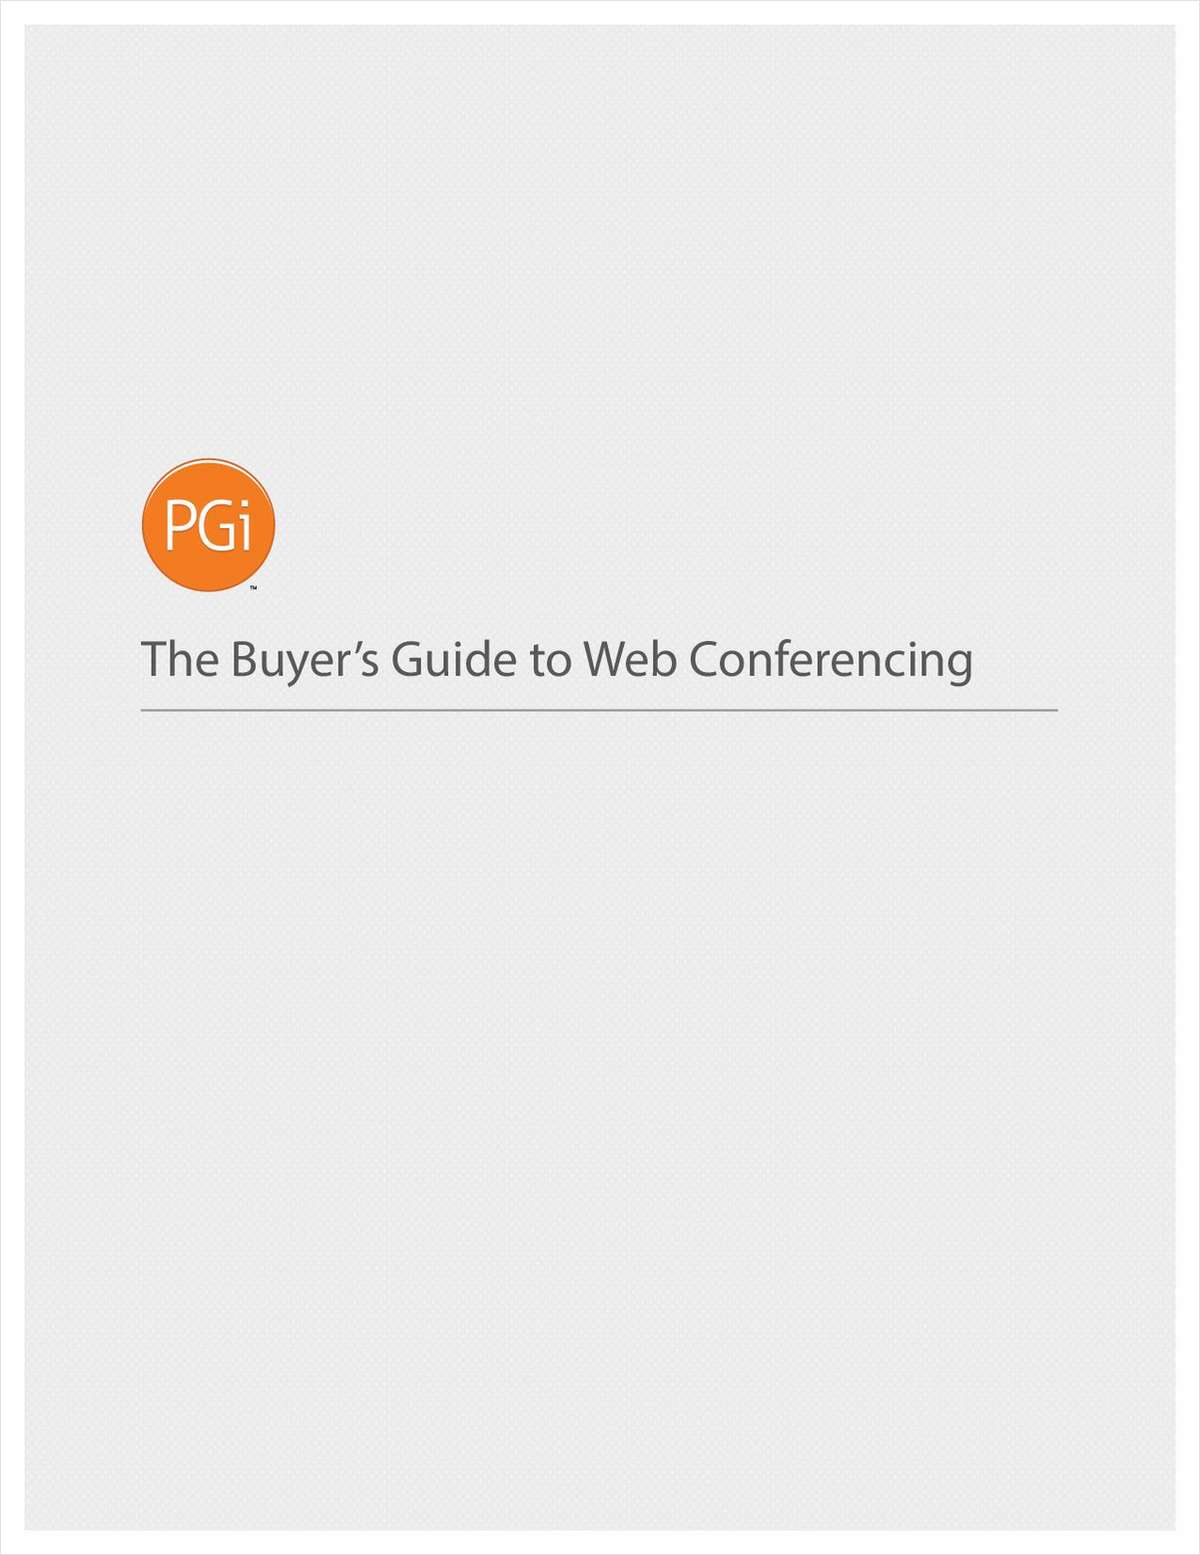 Web Conferencing Buyer's Guide